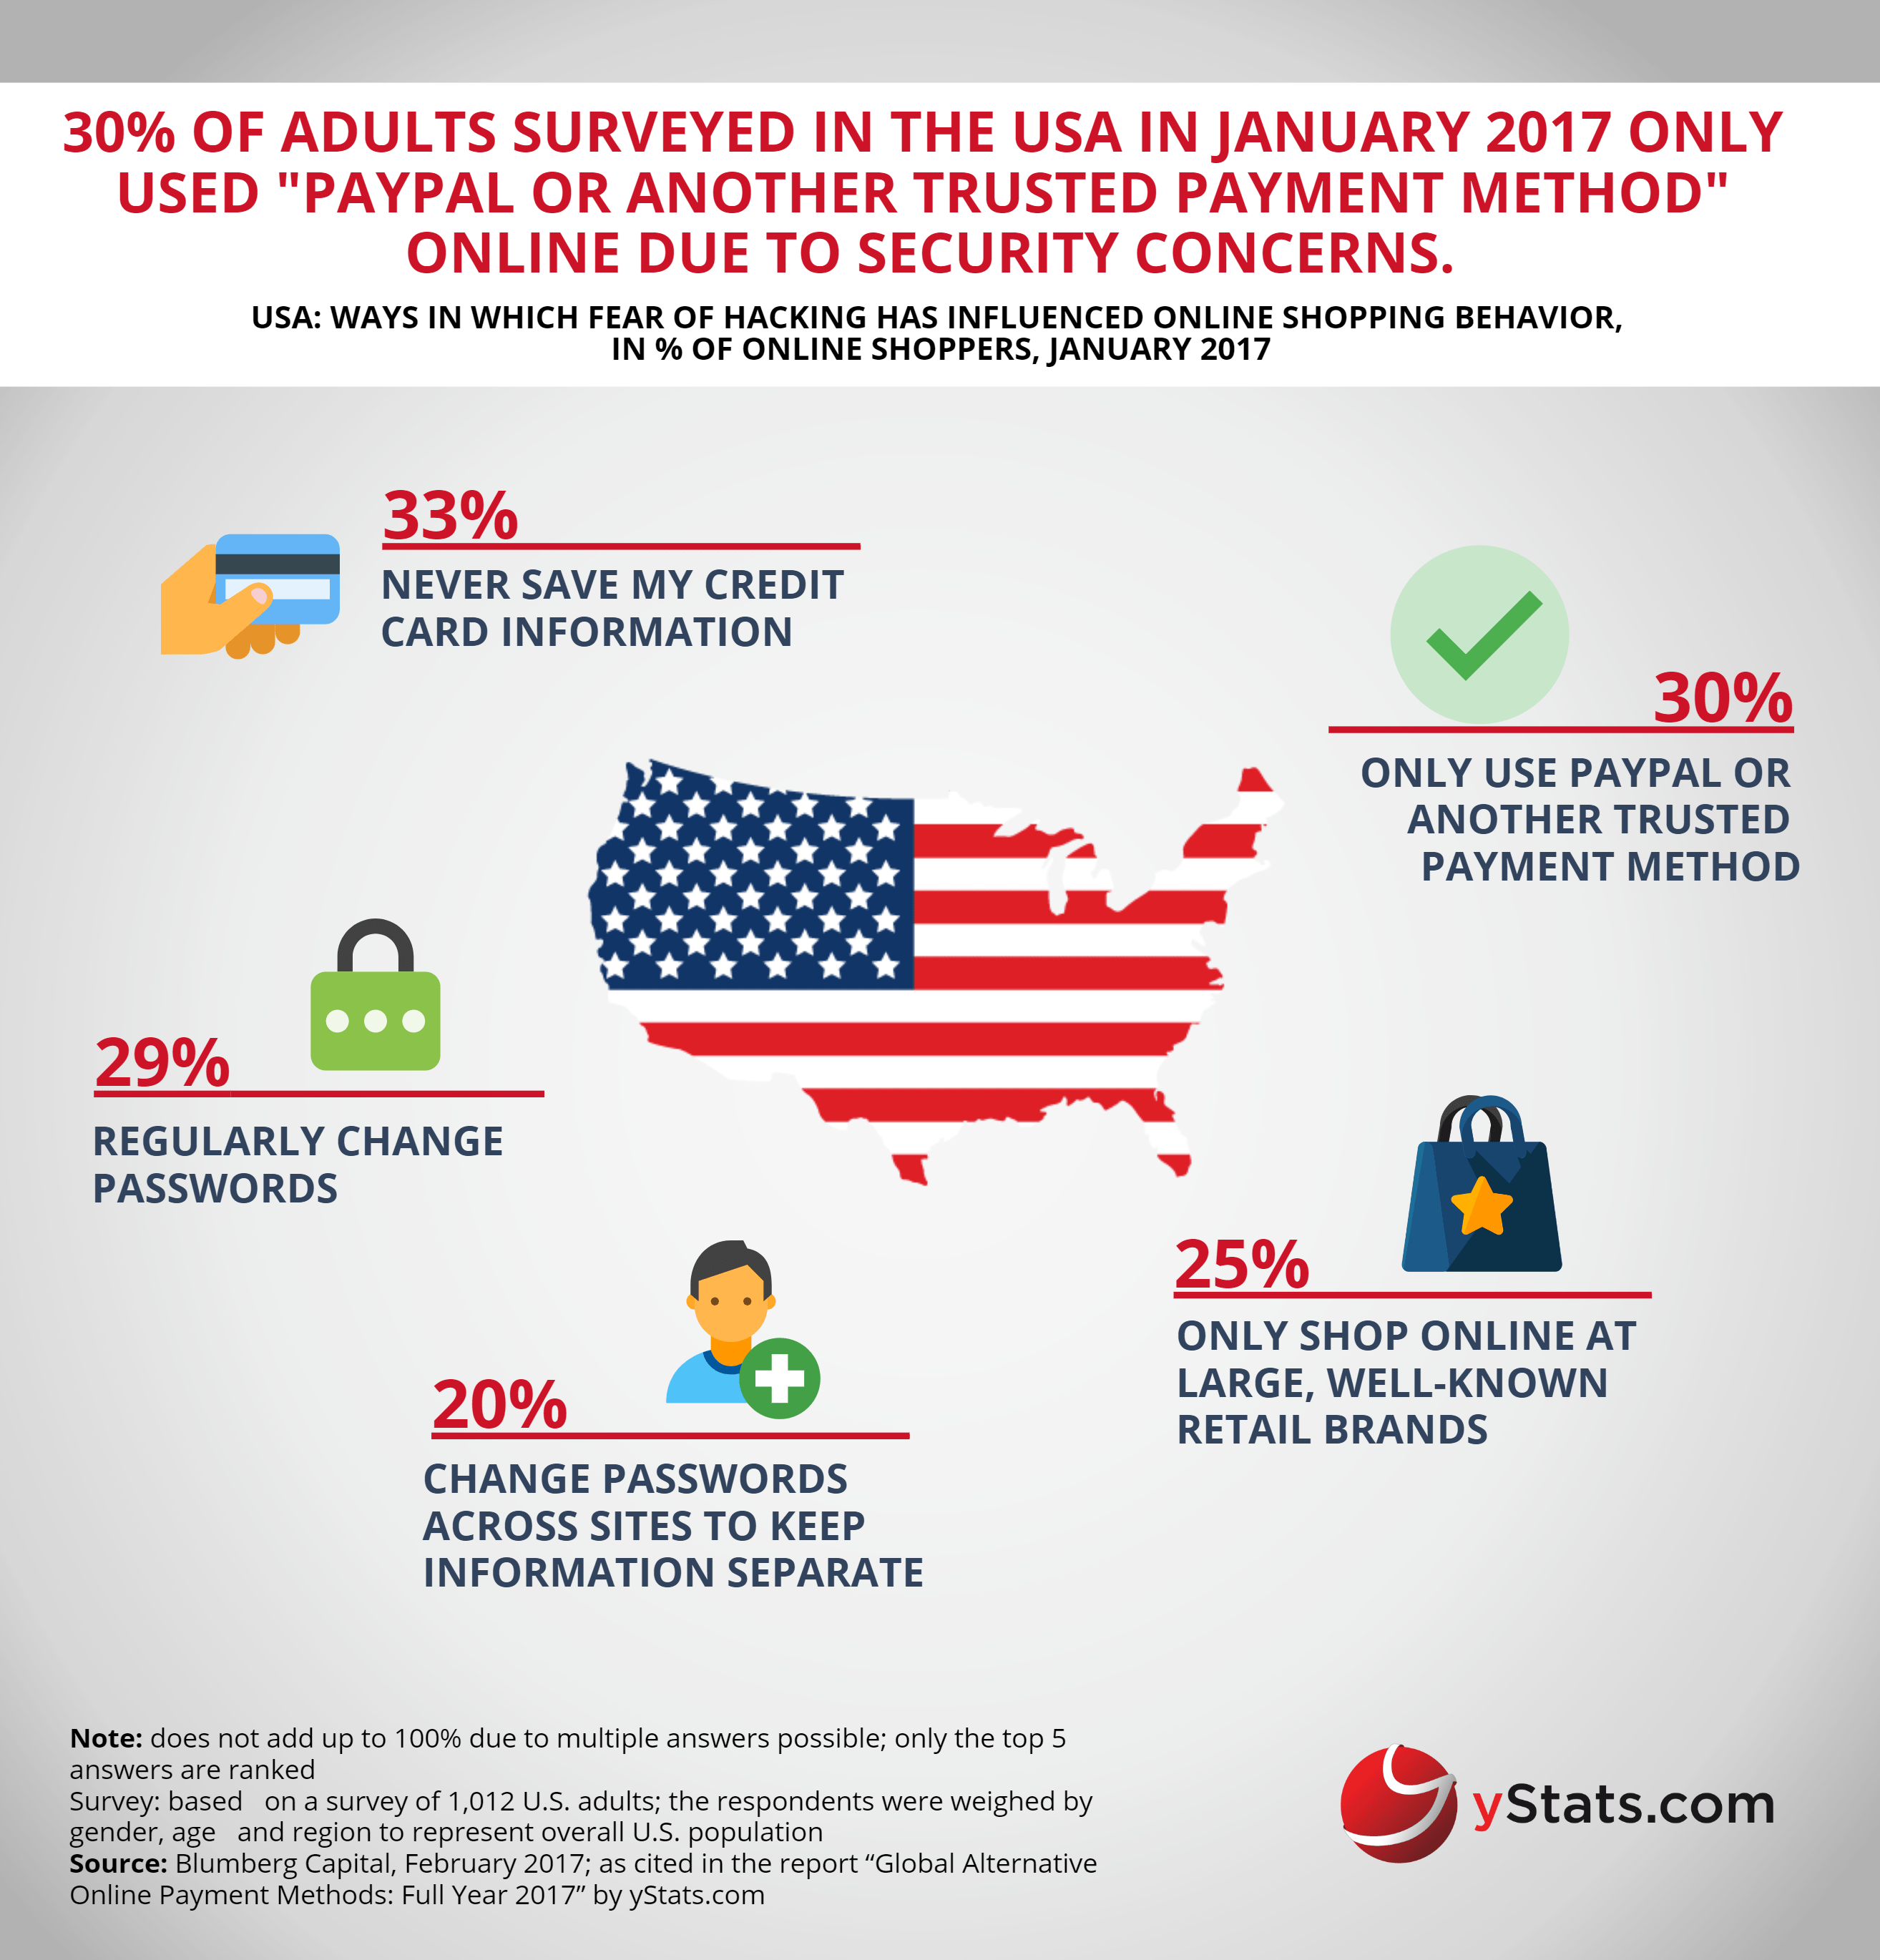 ways influence online shopping behavior in USA